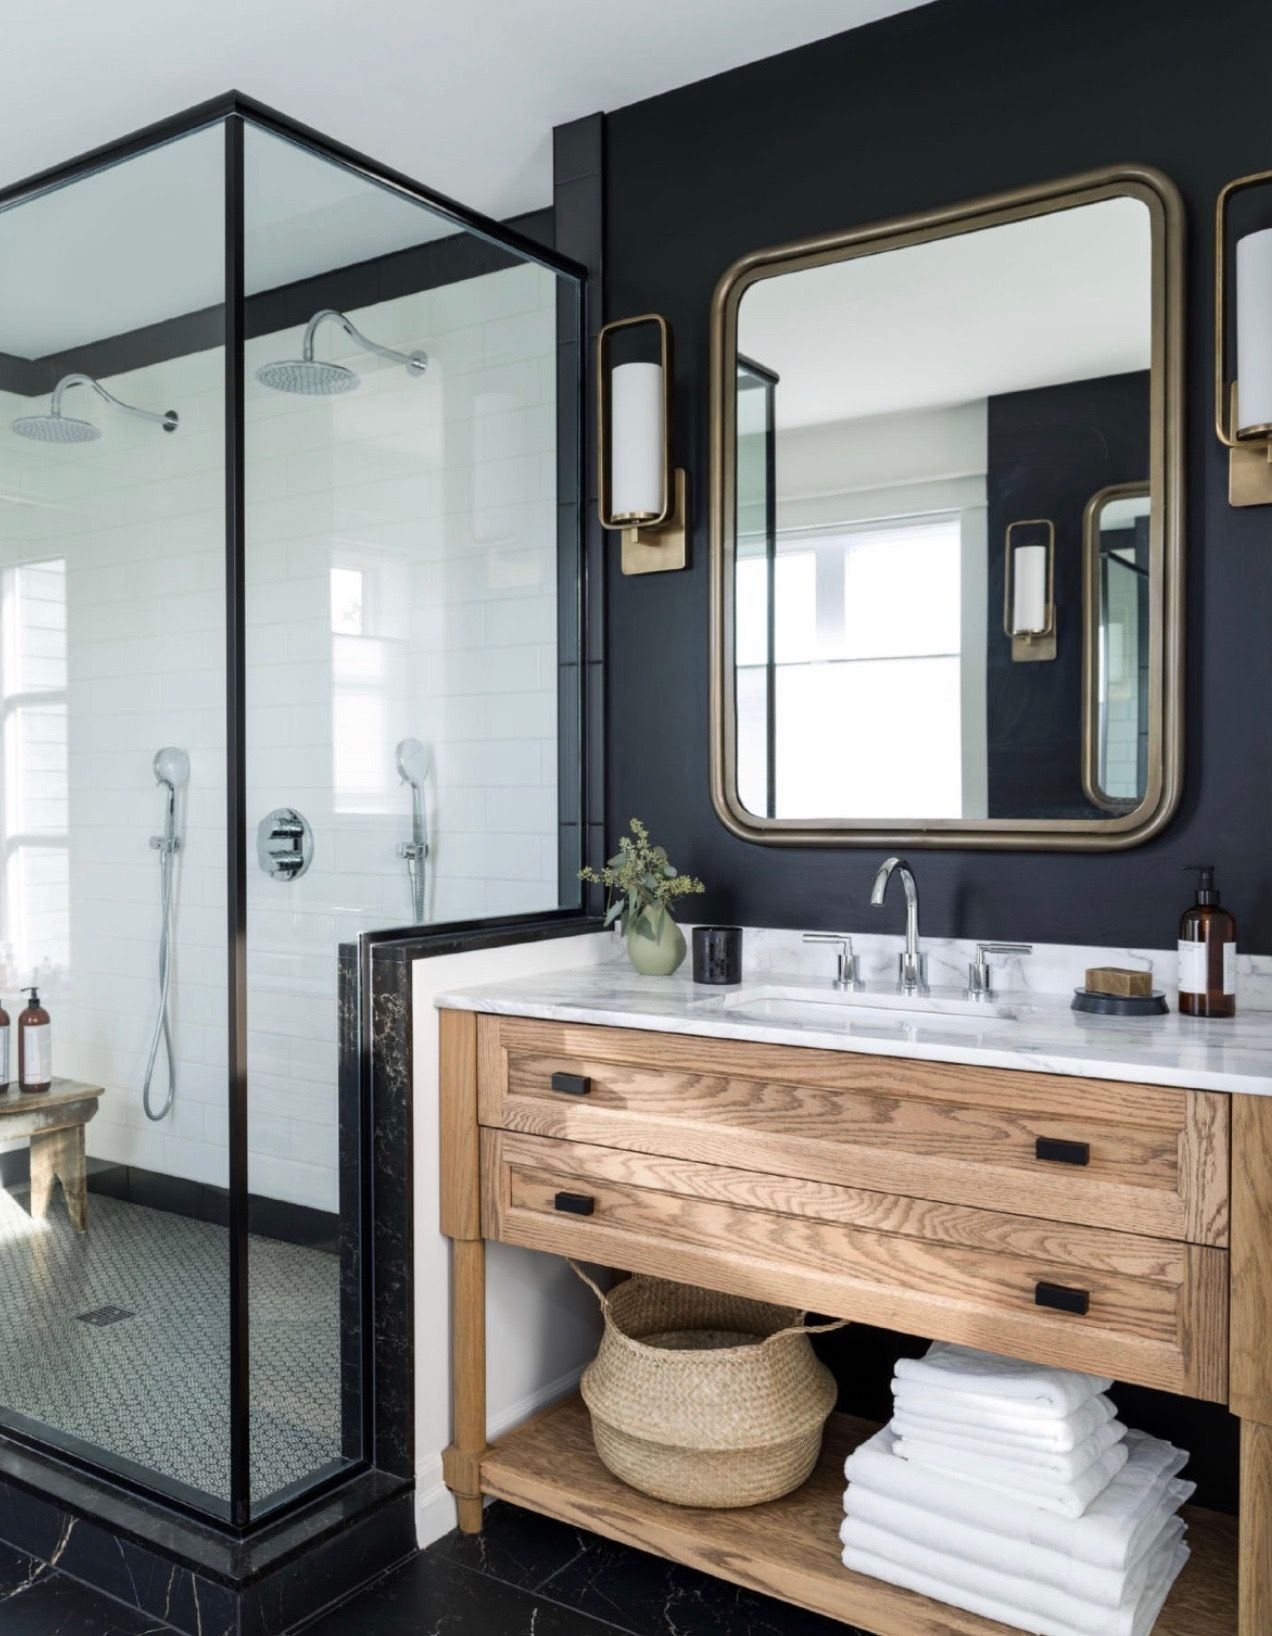 If You Re Seeking To Freshen Your Bathroom With A New Paint Task The Large Number Of Color Options Can Be Fr Modern Bathroom Bathroom Interior Bathroom Design